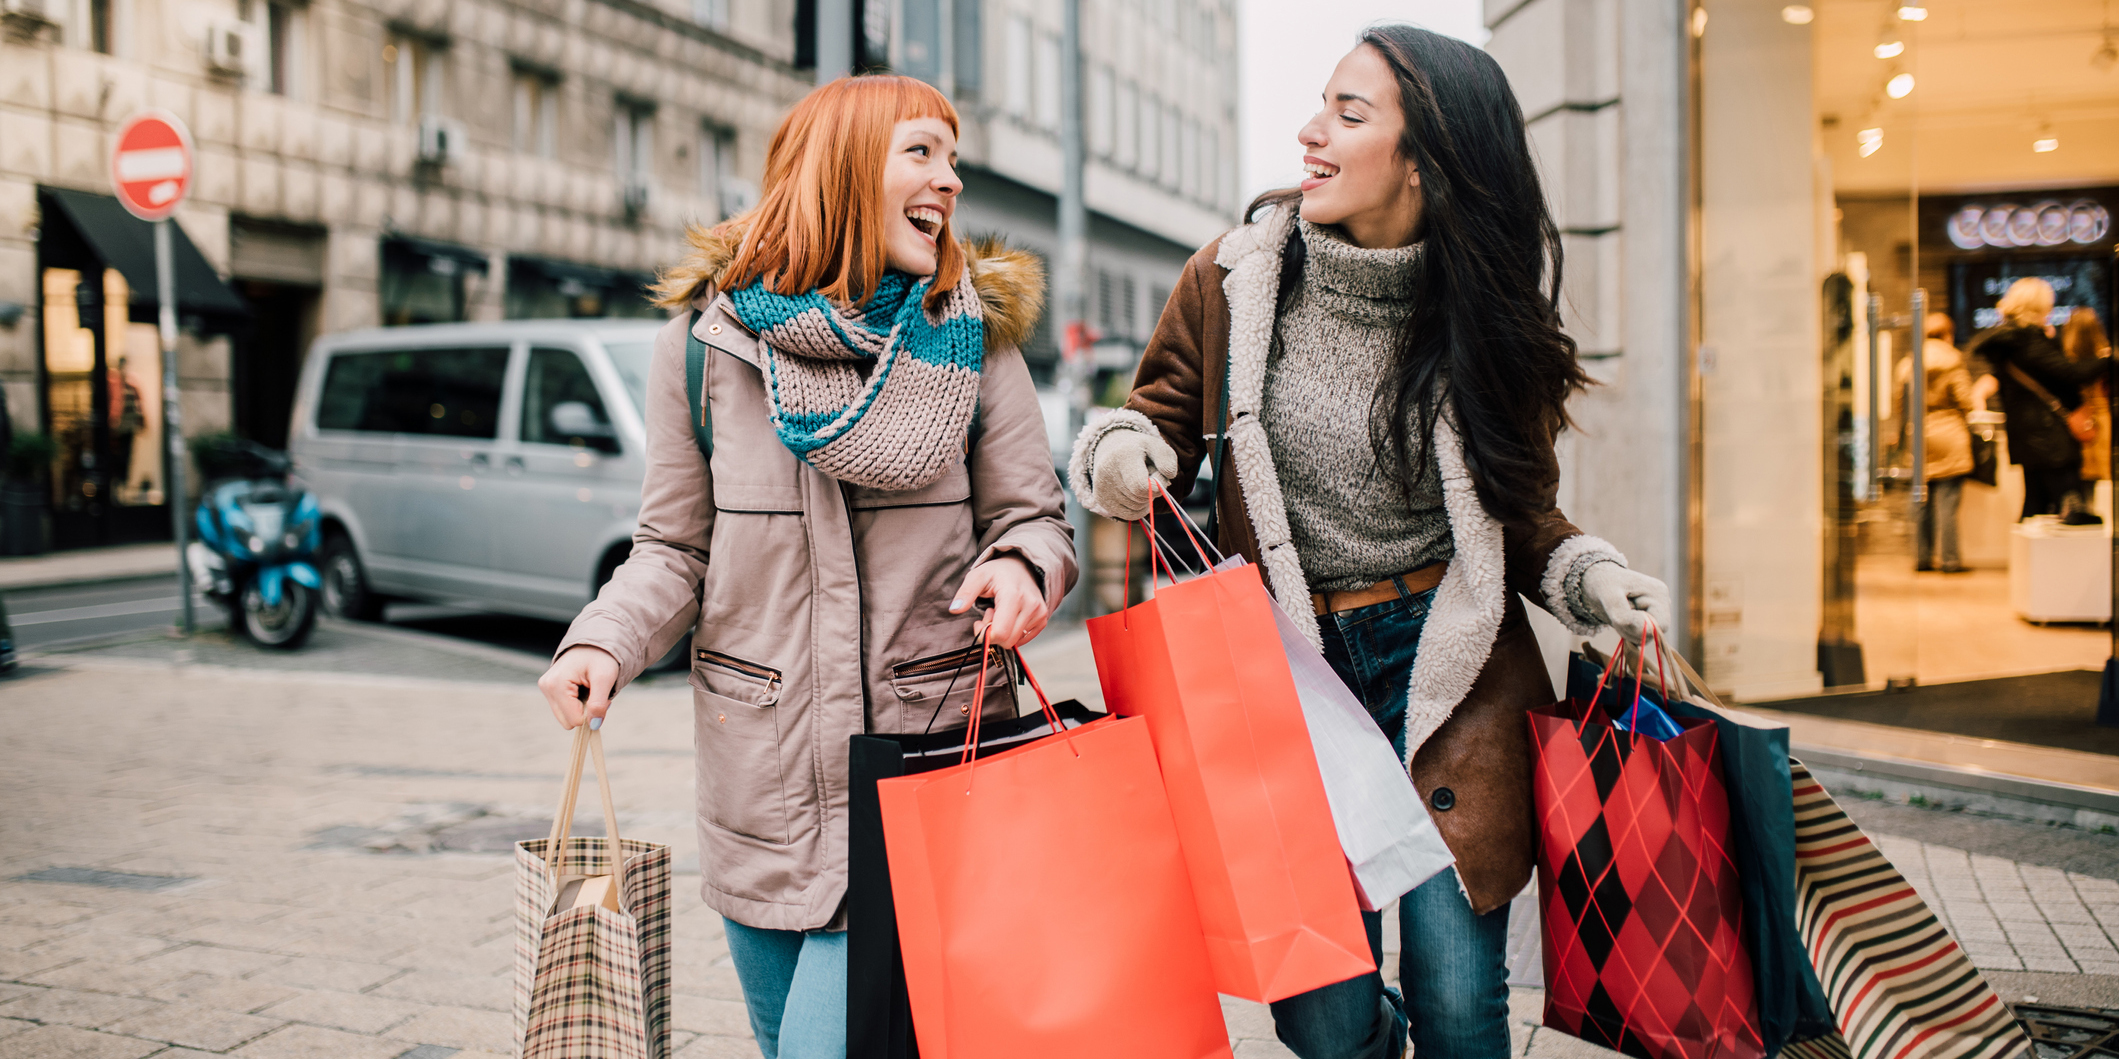 On average, holiday shoppers plan to spend about $758 on gifts this year, up 12 percent compared to $679 last year.